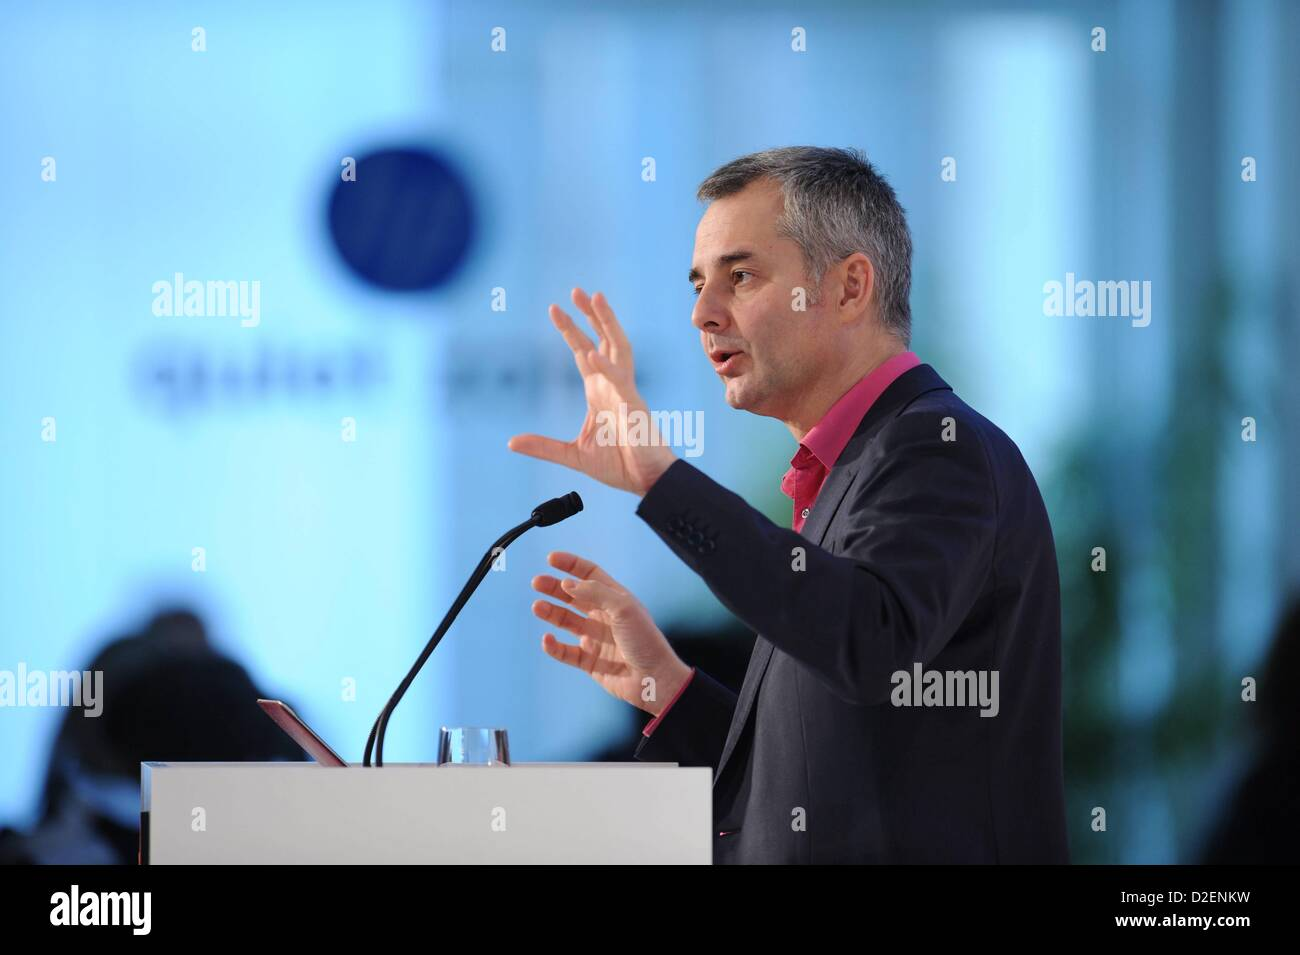 MUNICH/GERMANY - JANUARY 22: Albert-László Barabási (Northeastern University) gestures on the podium during the Stock Photo